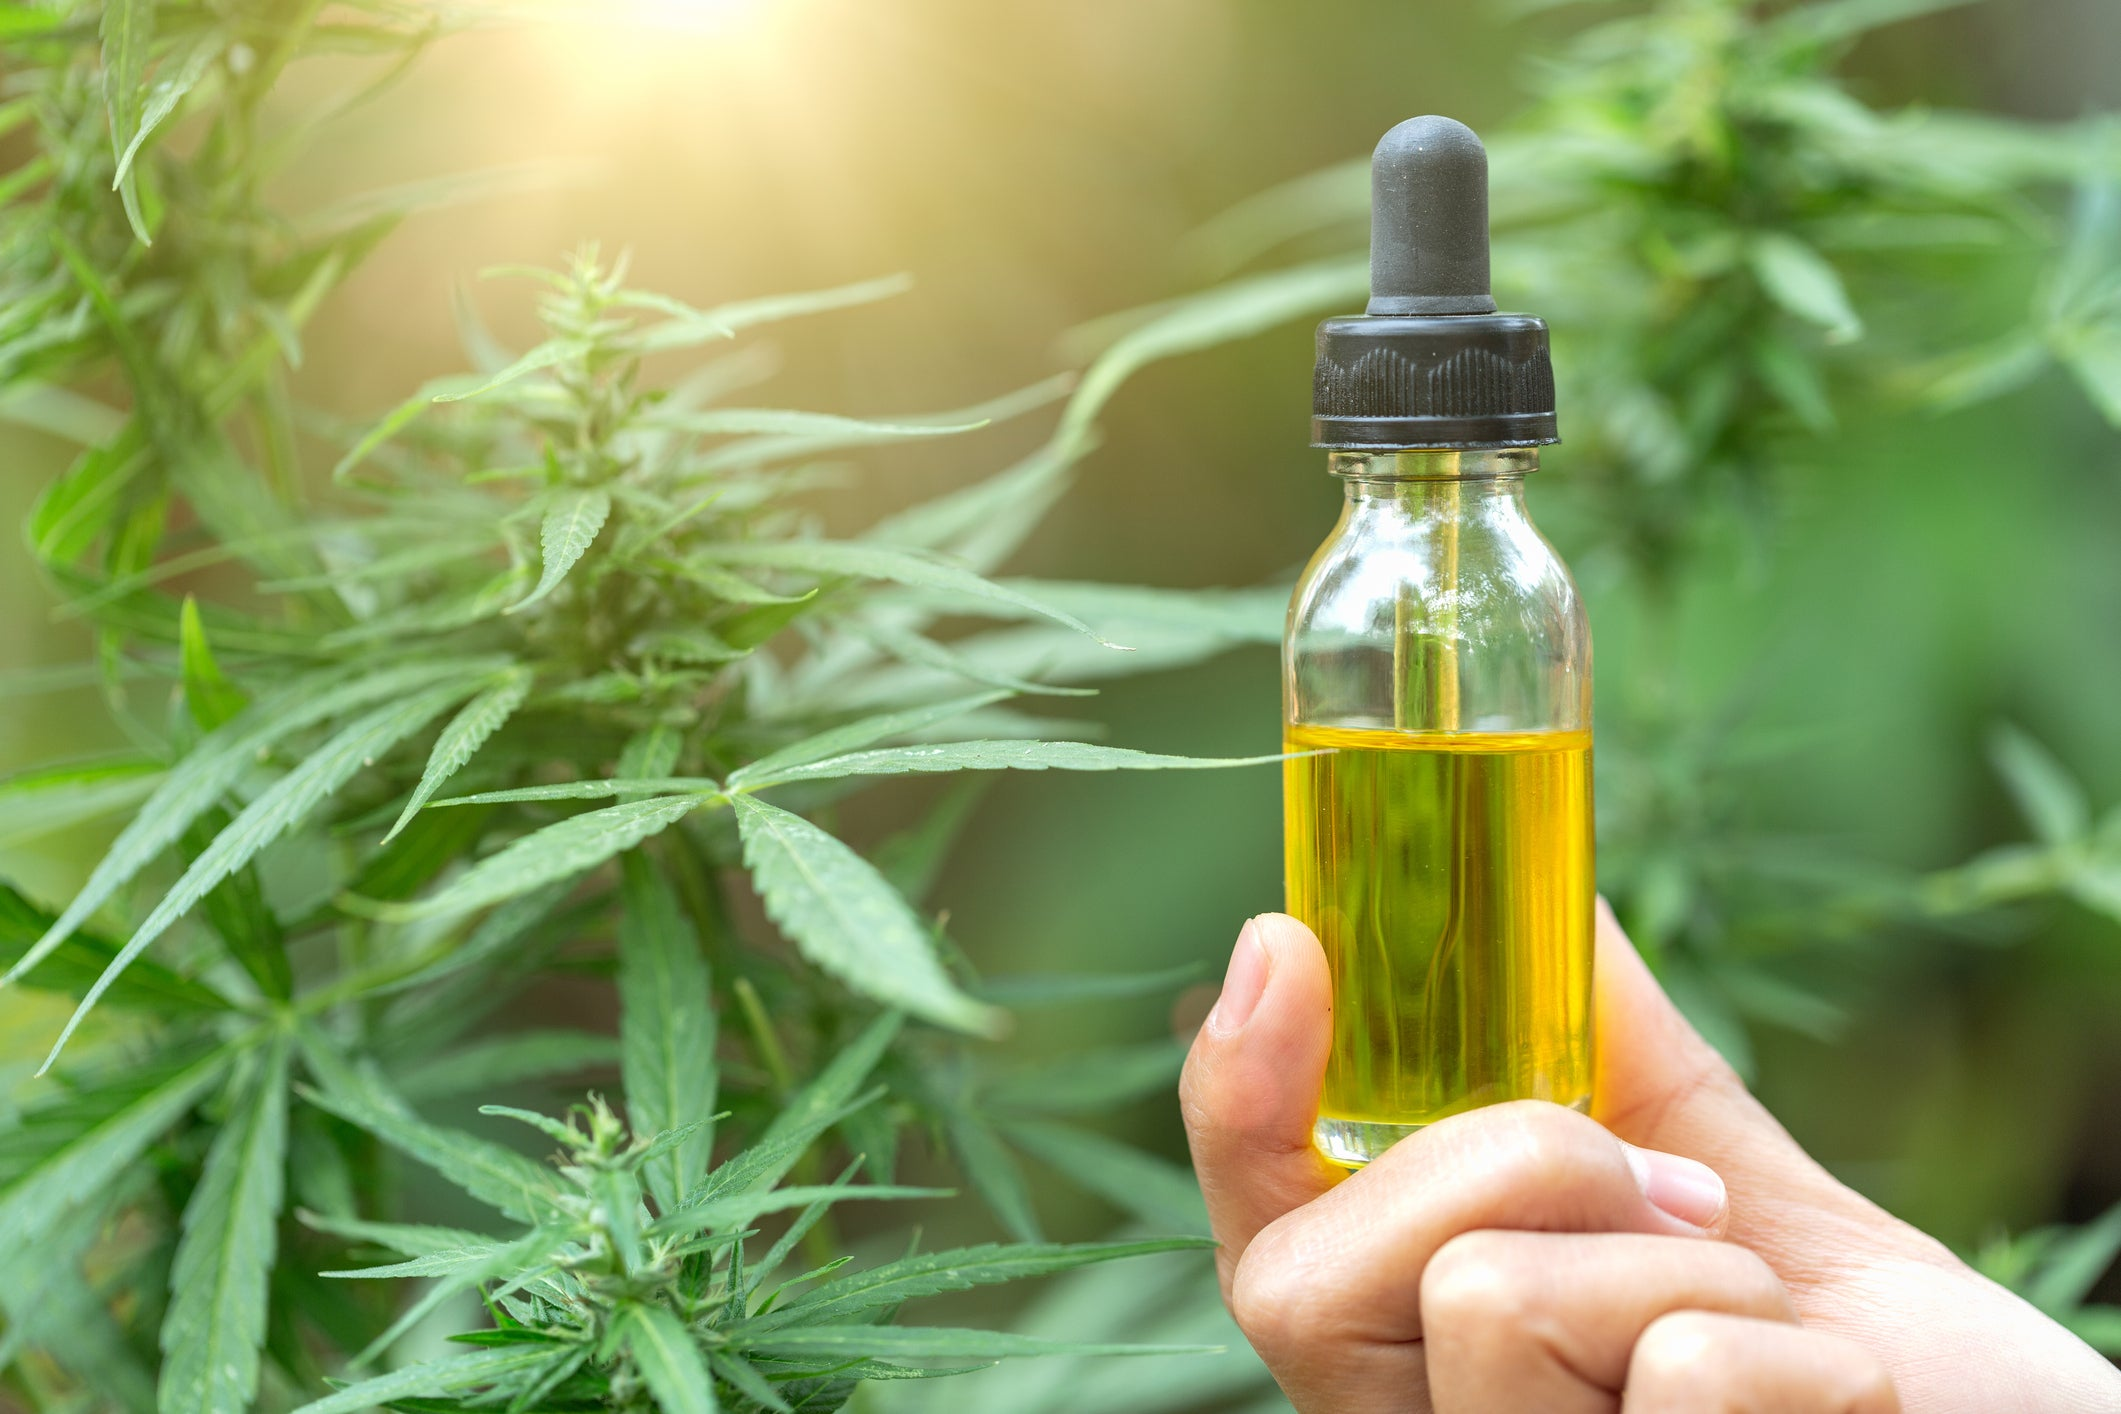 Face the Truths: The CBD Hype Train Has Hindered